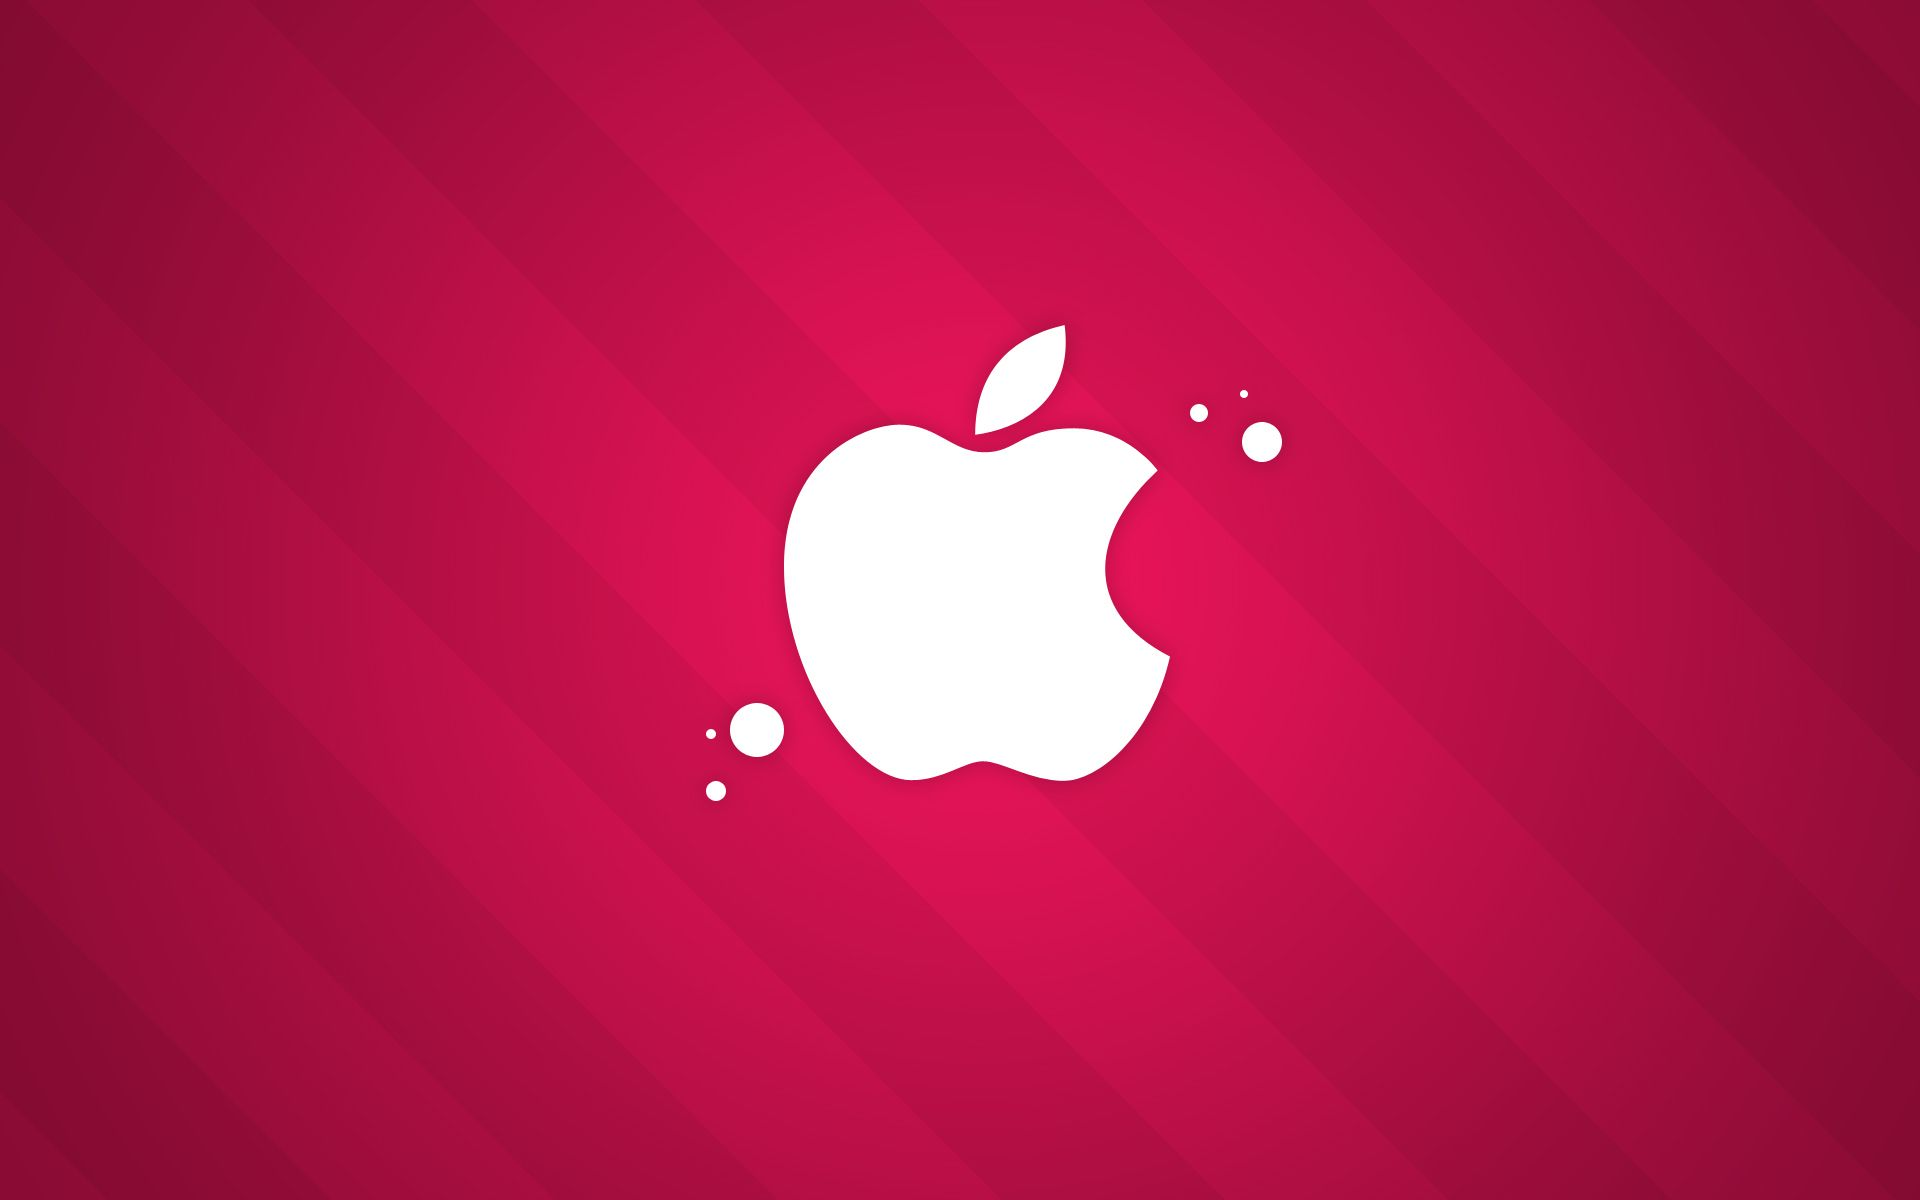 Mac Wallpaper Sell Your Used Electronics At Techpayout We Pay Top Dollar Techpayout Com Apple Logo Wallpaper Mac Wallpaper Apple Wallpaper